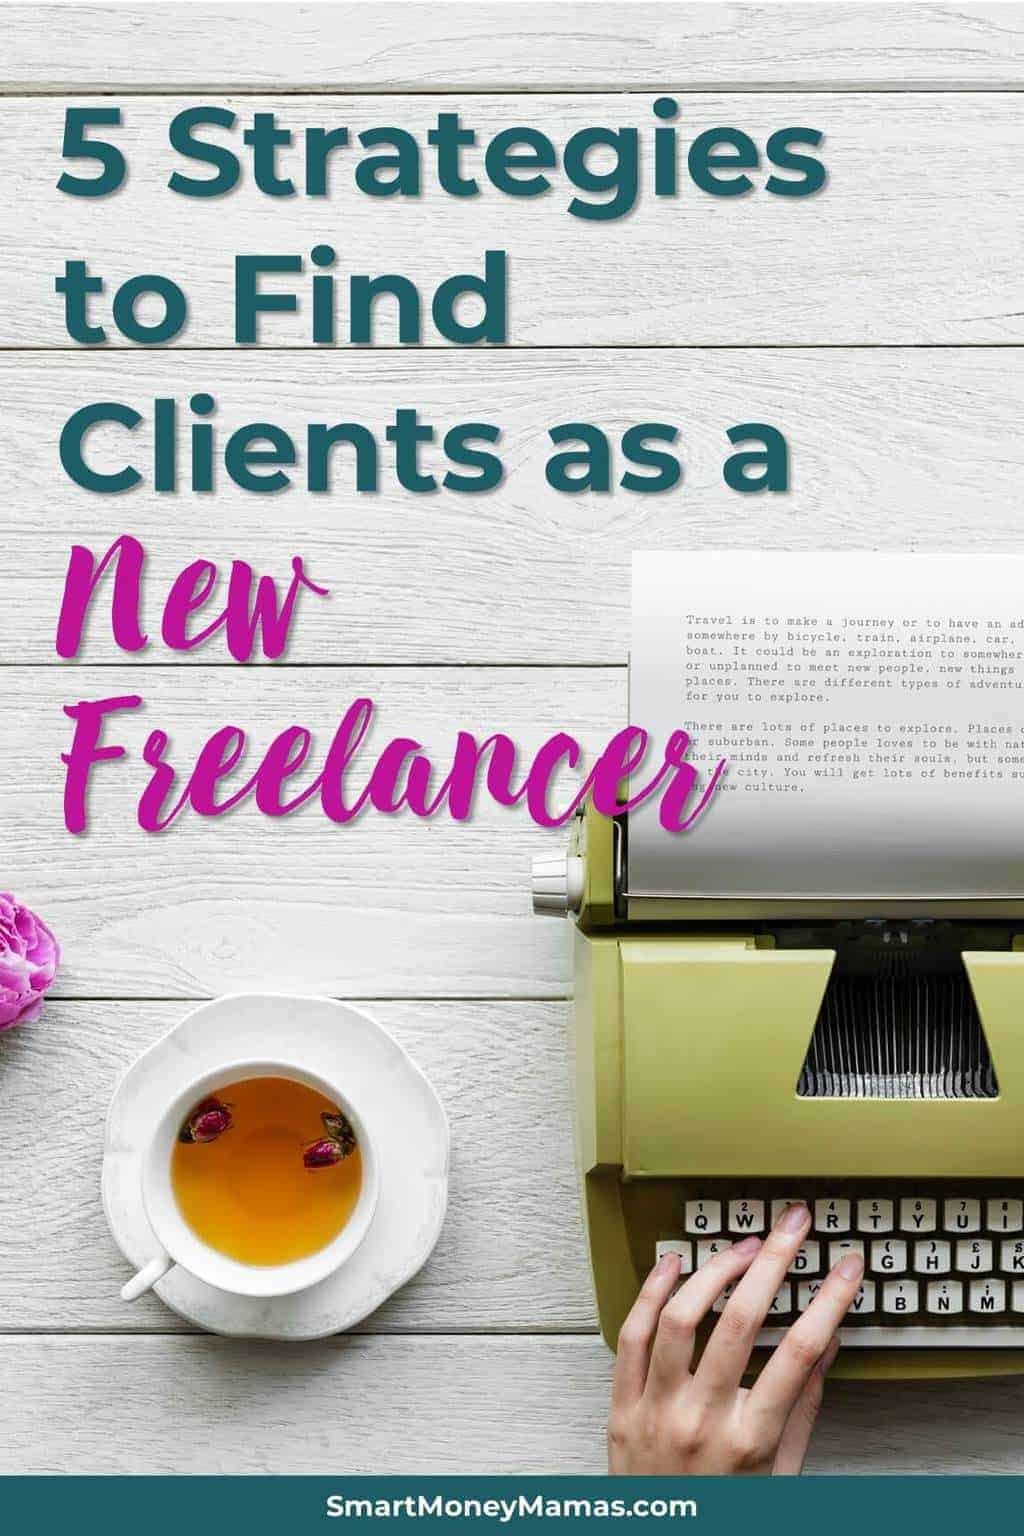 5 Strategies to Find Clients as a New Freelancer